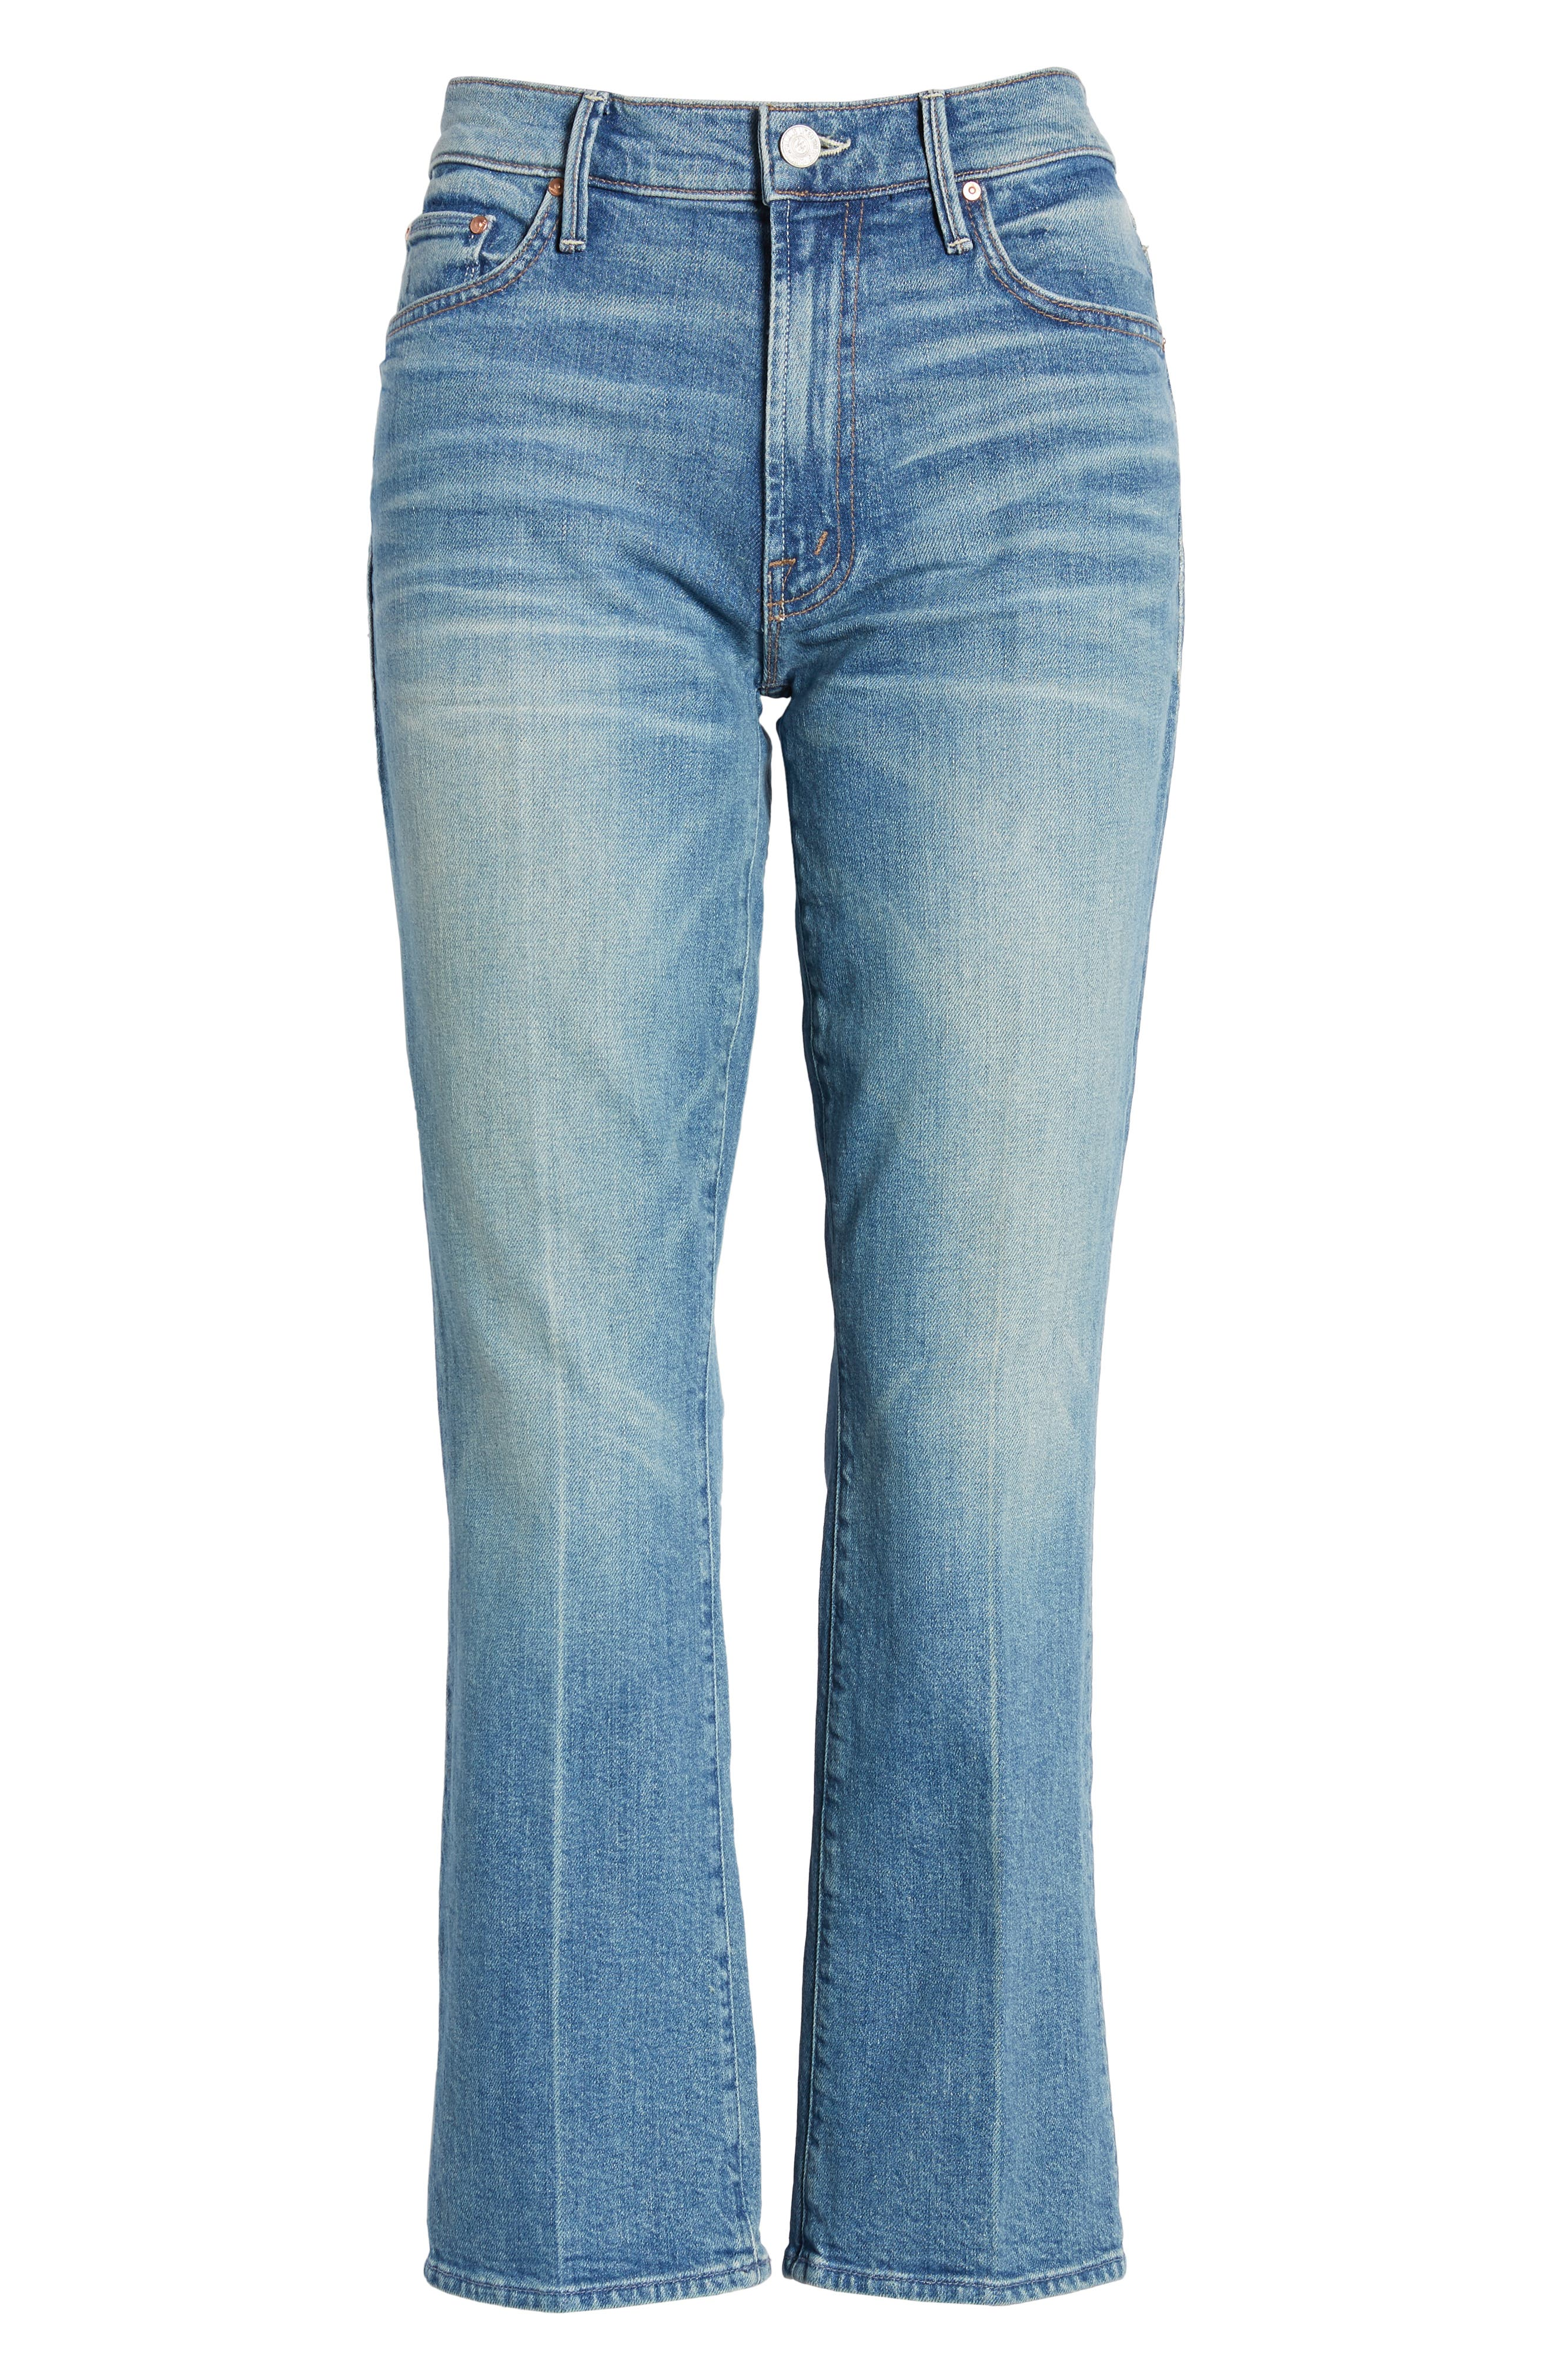 MOTHER, The Insider Ankle Bootcut Jeans, Alternate thumbnail 6, color, 421